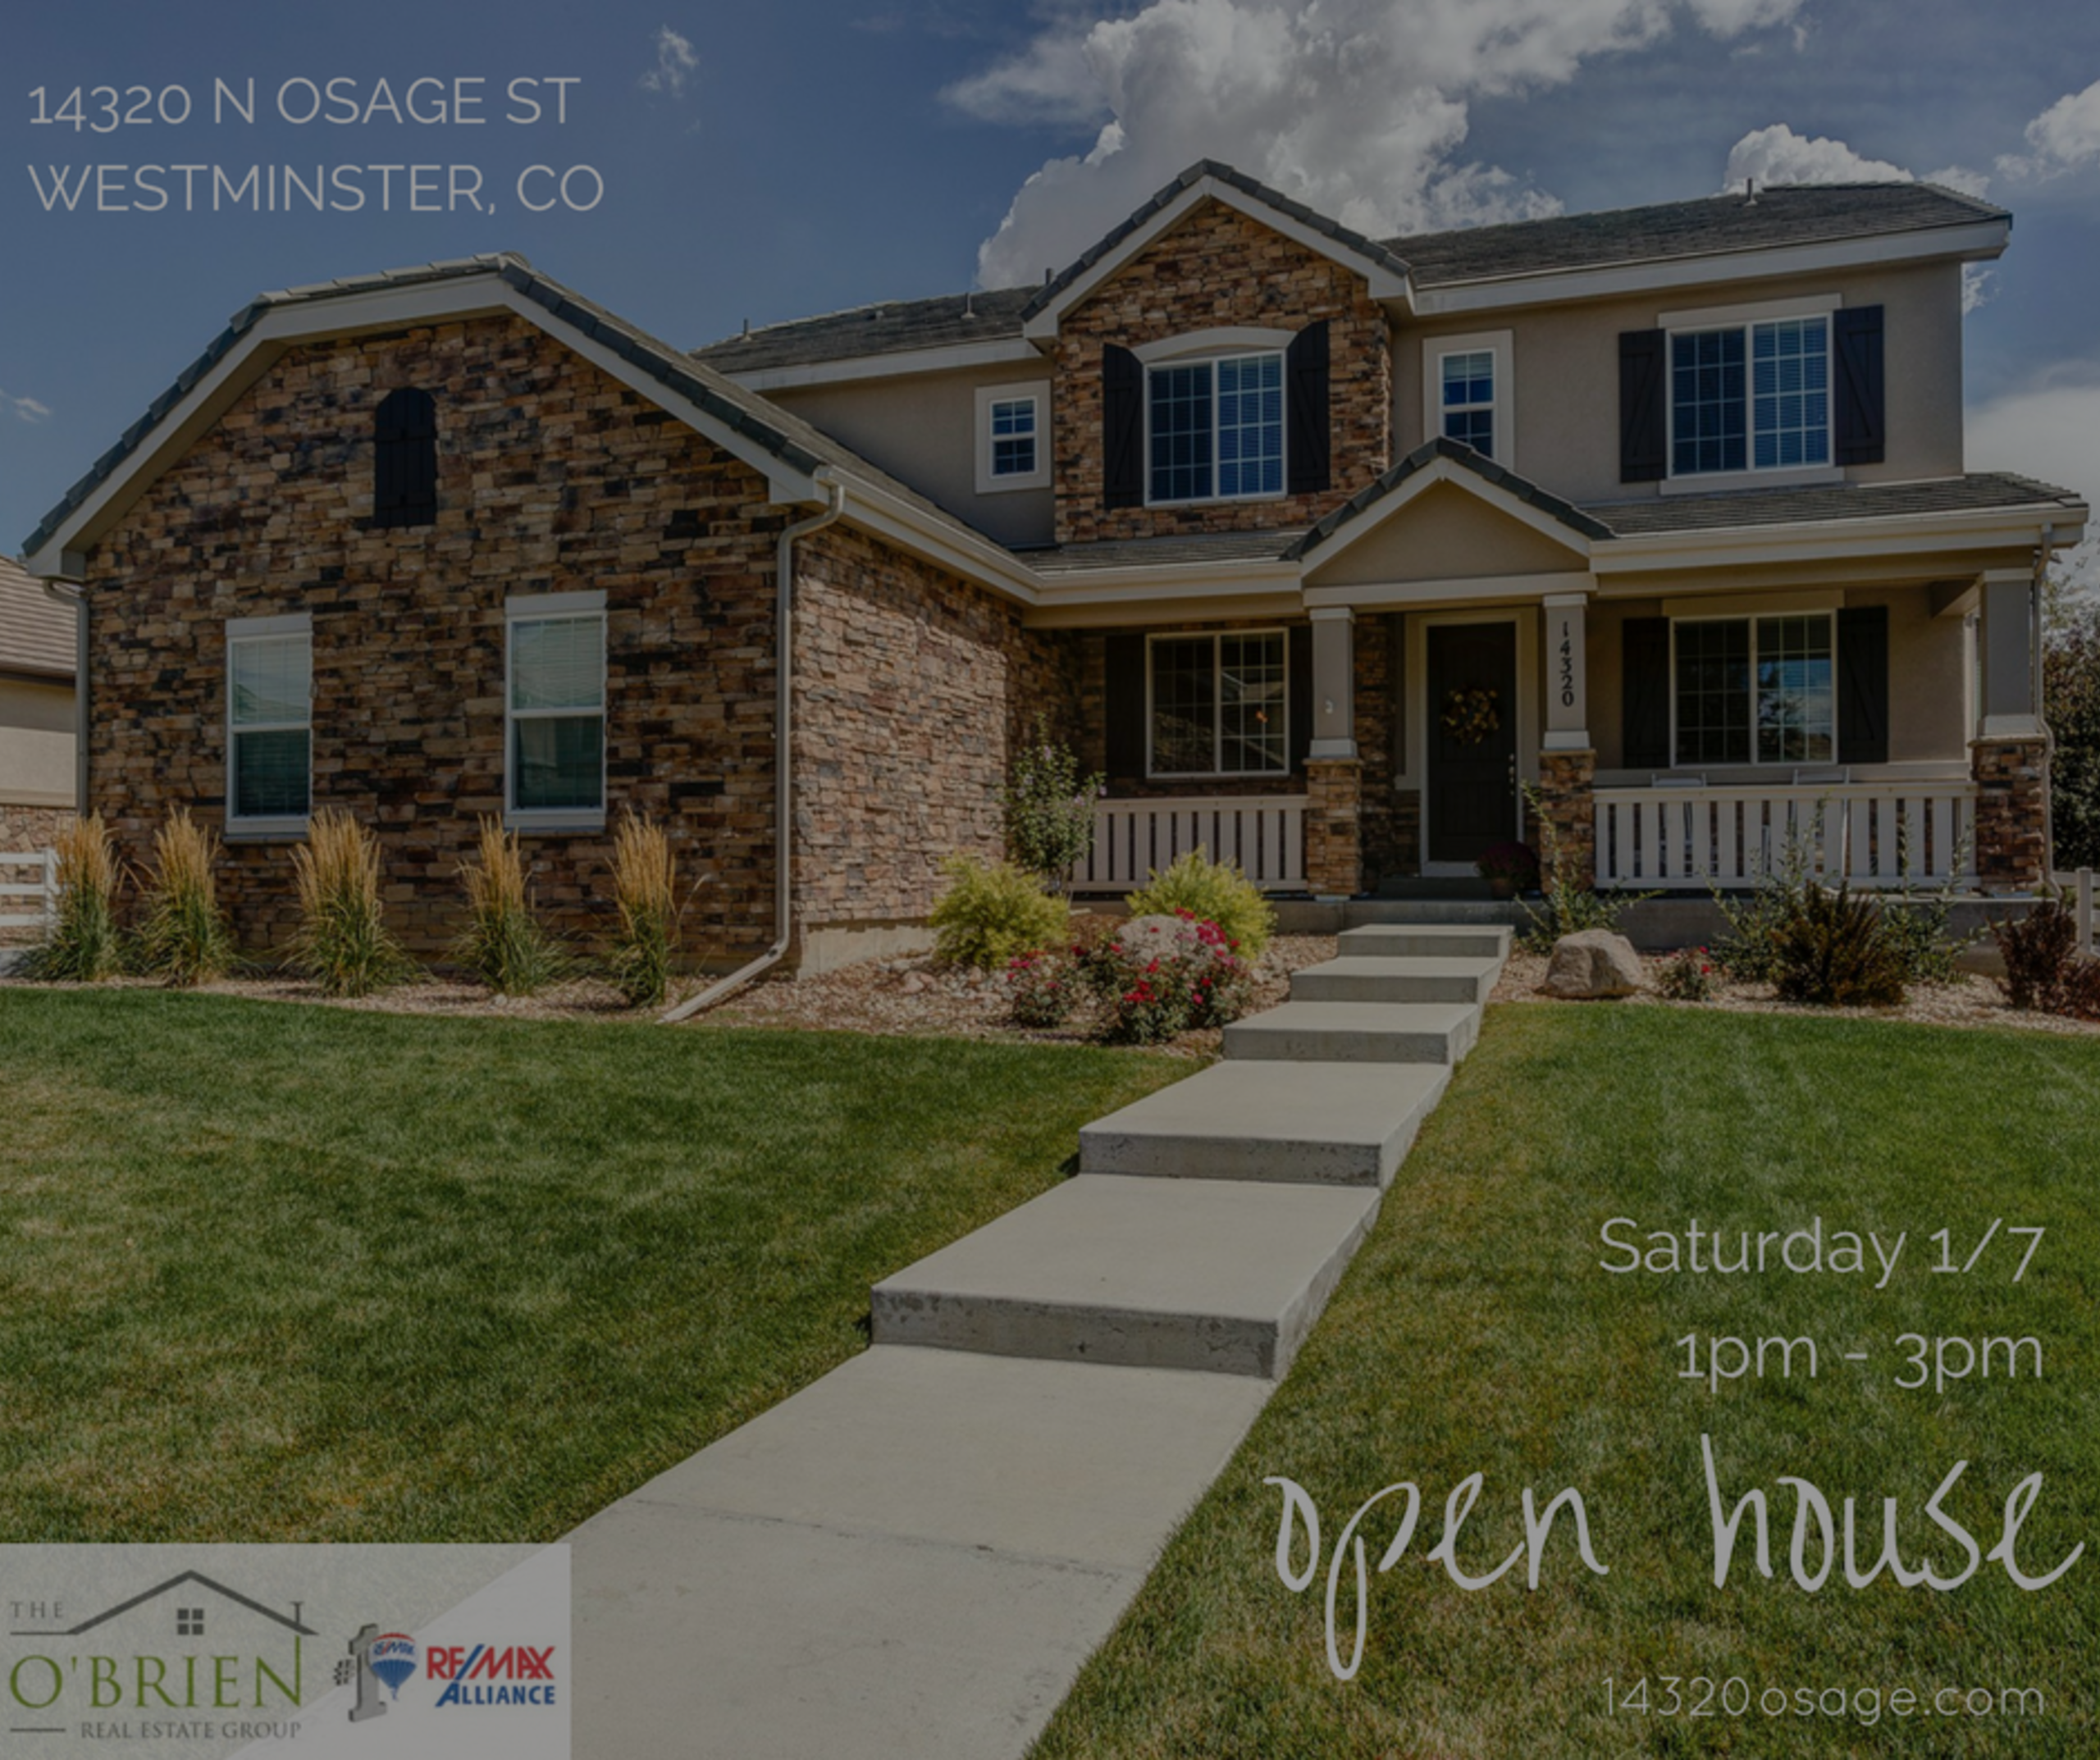 Huntington Trails Open House Today 1-3 PM